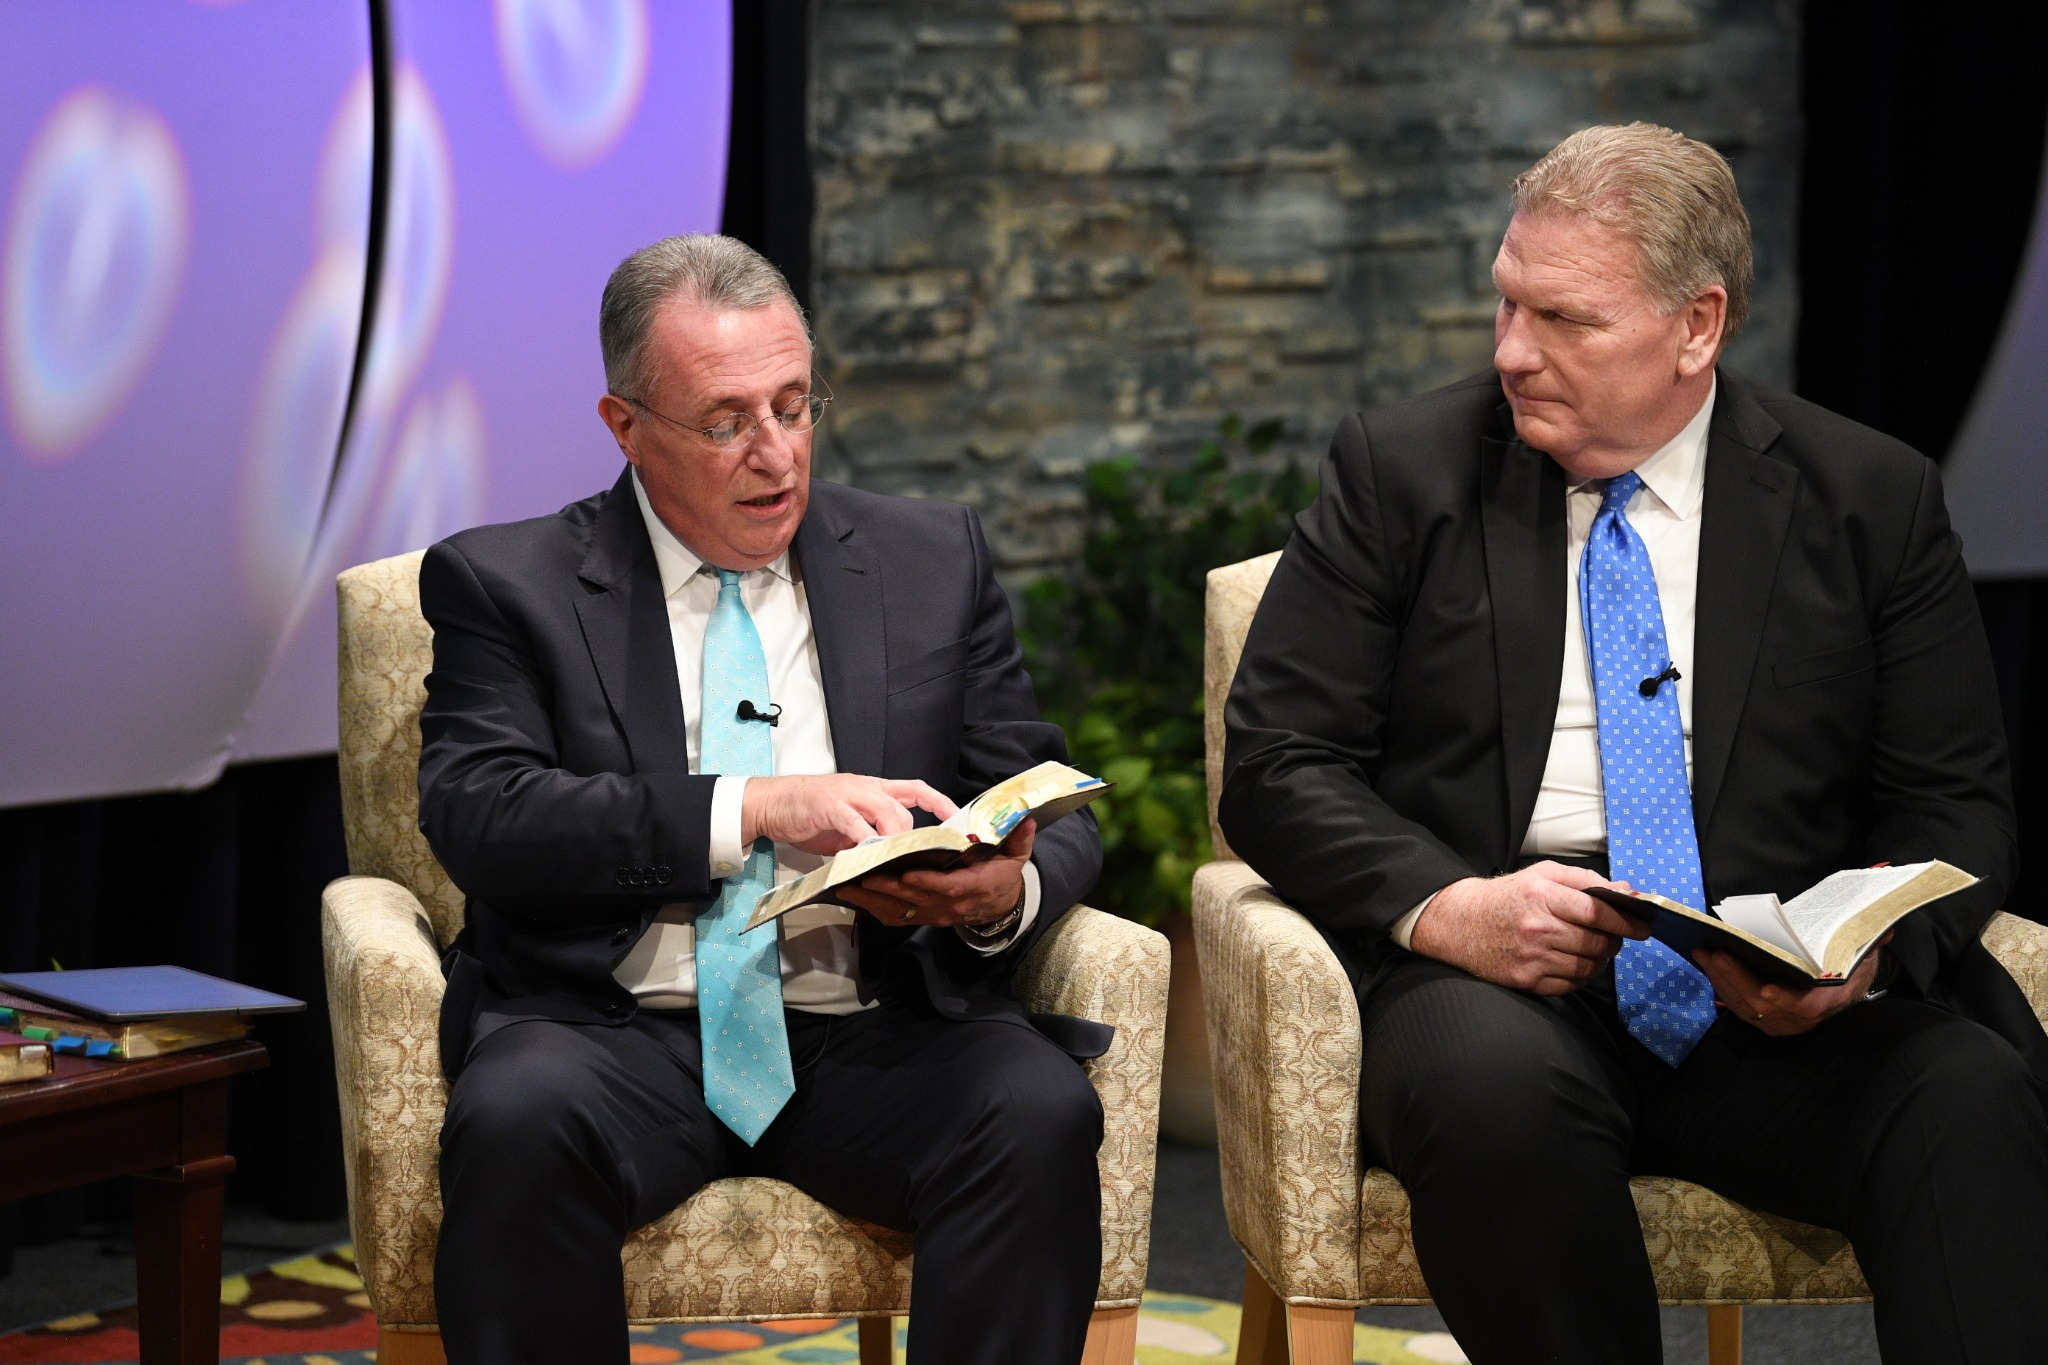 Elder Ulisses Soares (left) of the Quorum of the Twelve Apostles and Elder Craig C. Christensen of the Seventy participate in a live 90-minute Worldwide Devotional Face to Face broadcast for young adults of The Church of Jesus Christ of Latter-day Saints on September 15, 2019.